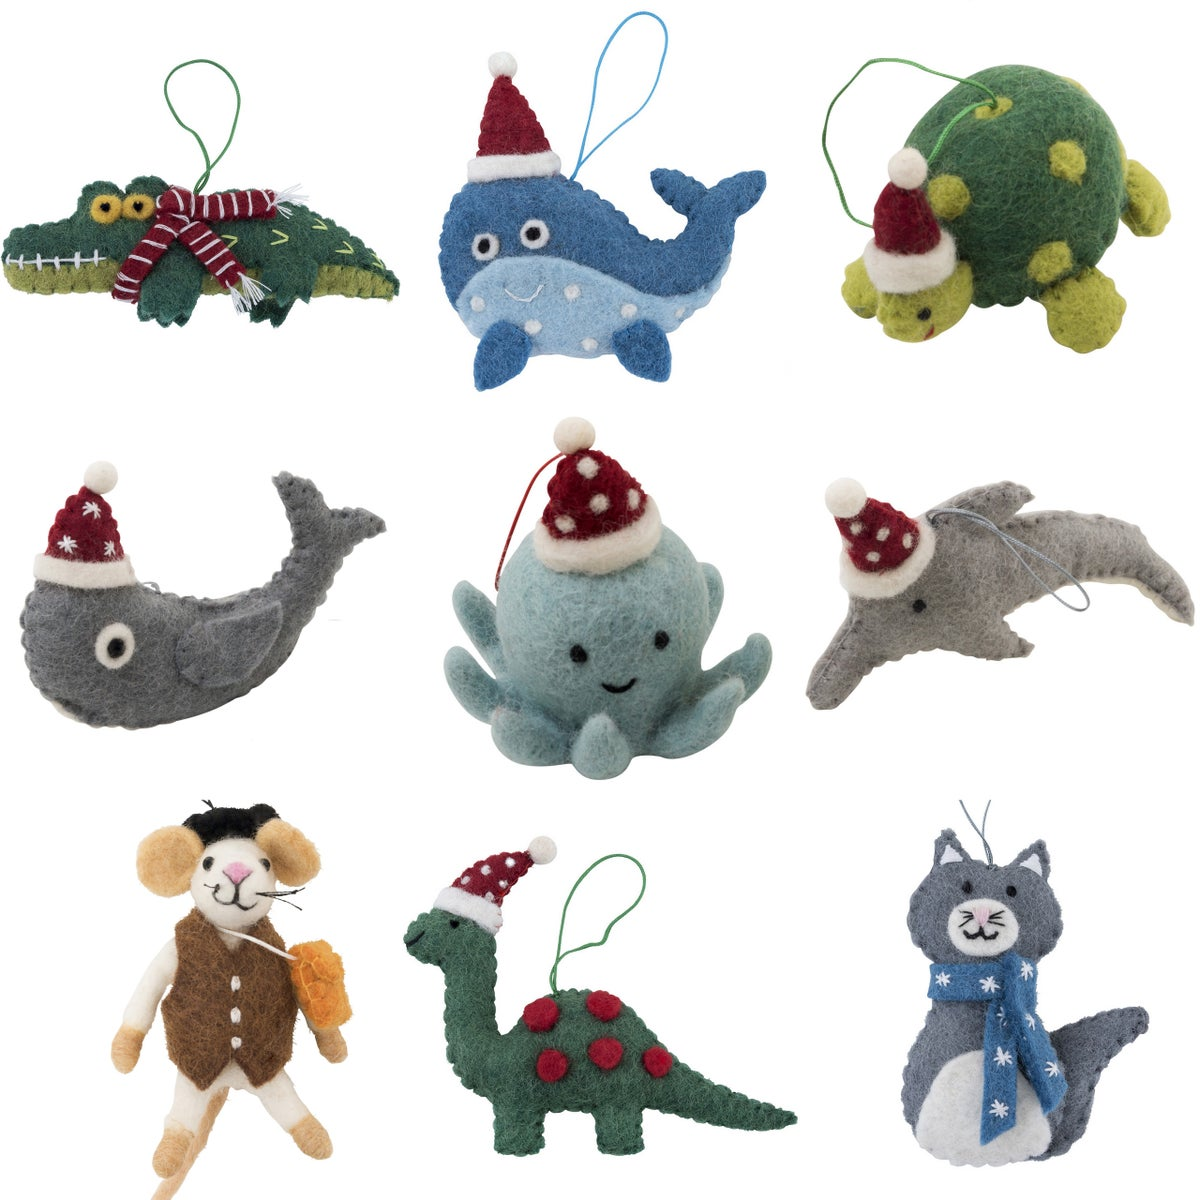 Image of Fairtrade Felt Christmas Decorations 2